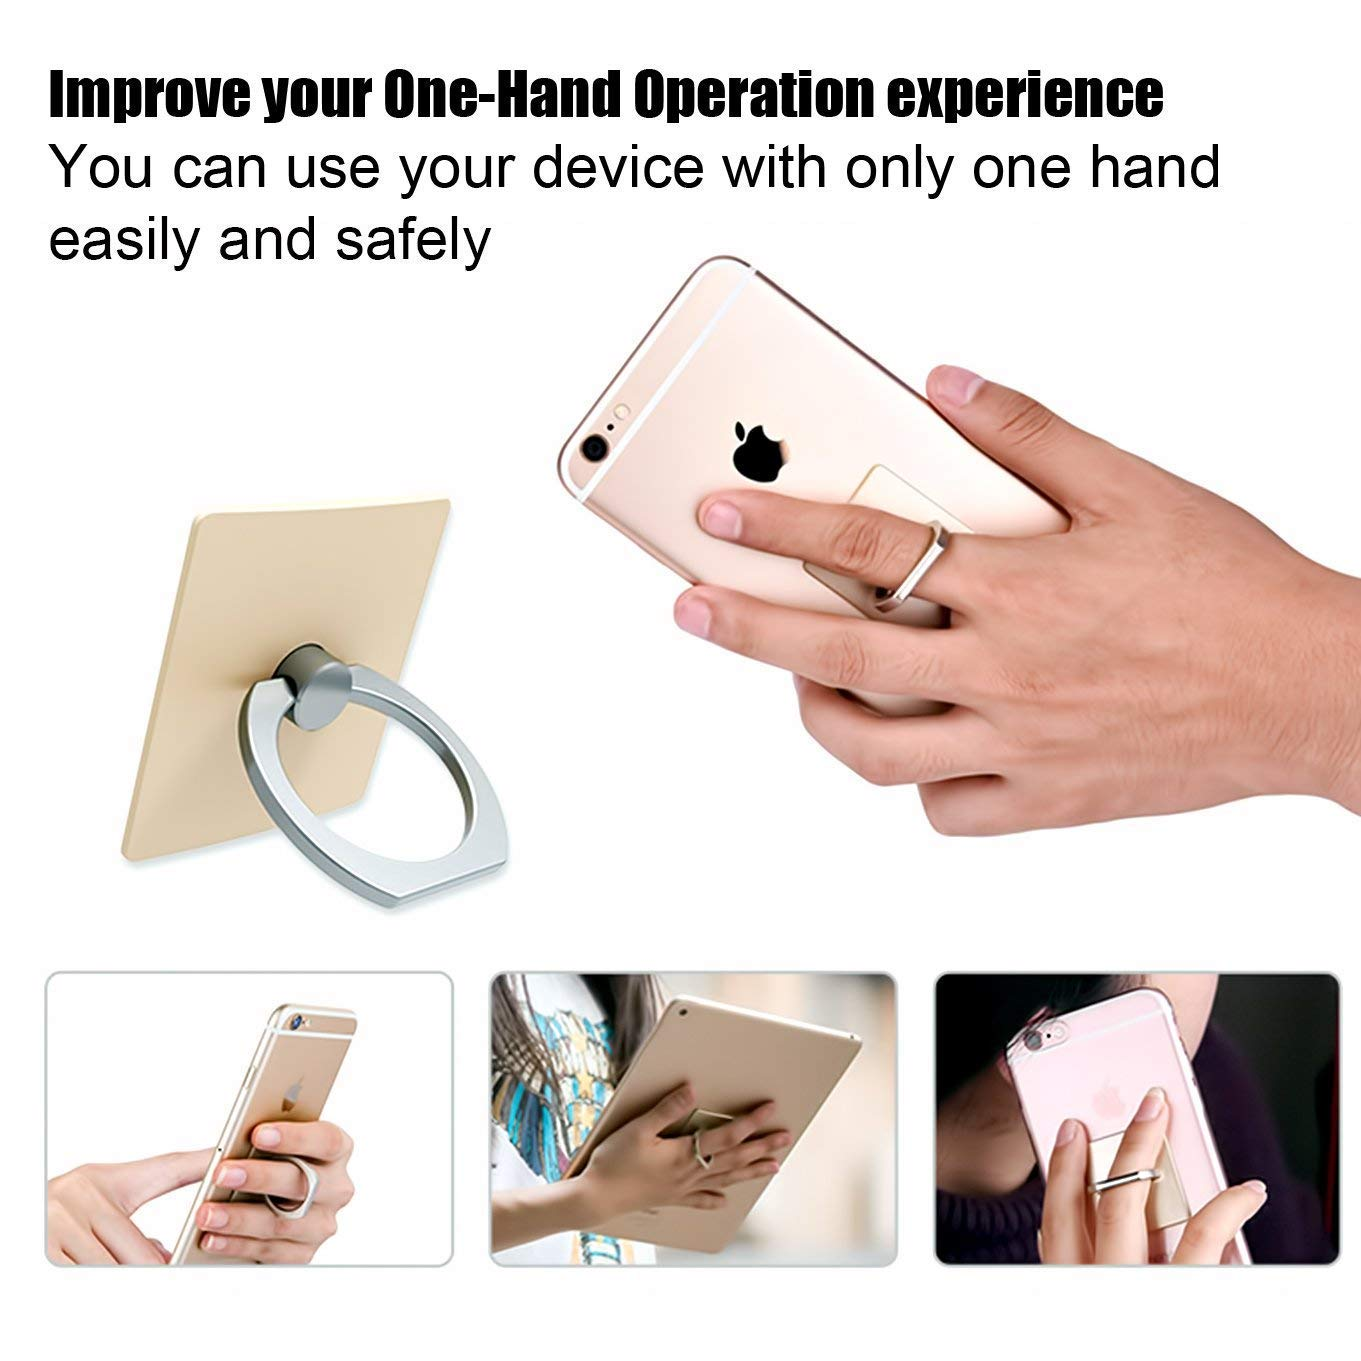 Black Cell Phone Finger Kickstand Loop Mount Stent 360 Degree Rotary Safe Hand Grip Compatible All iPhones Samsung Galaxy Android Pad Tablet